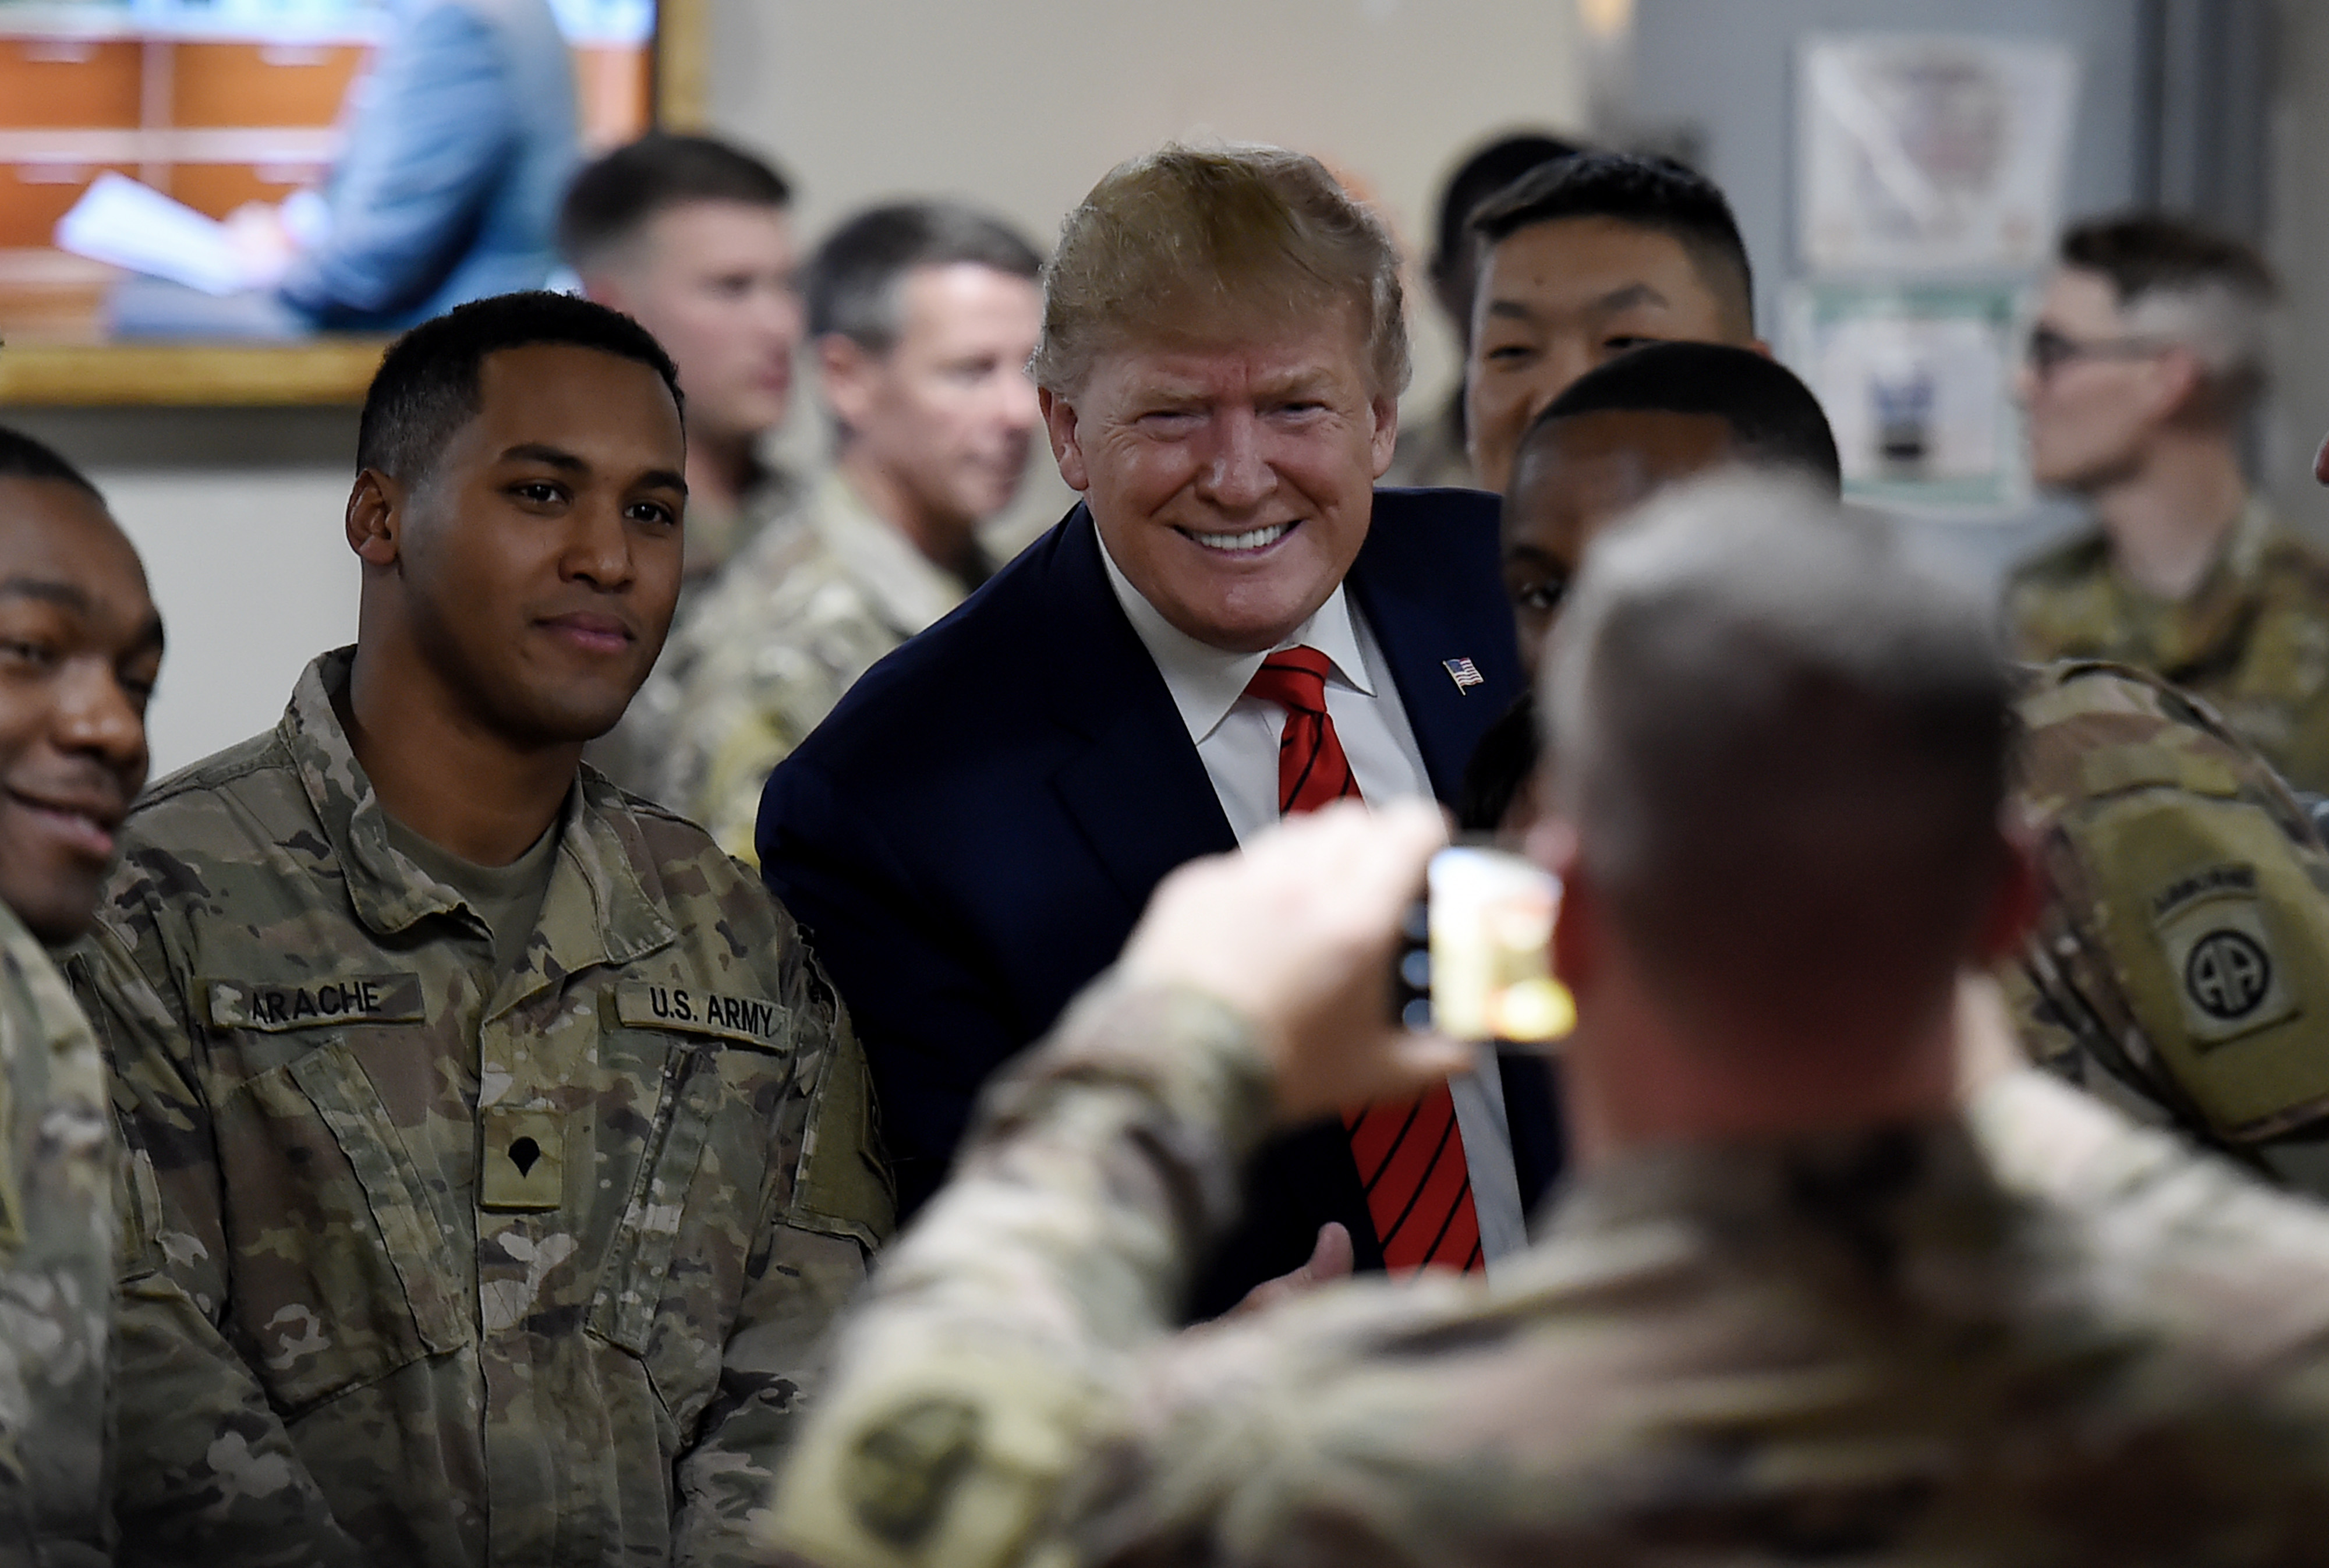 President Donald Trump poses for photos with U.S. troops at Bagram Air Field during a surprise visit on Nov. 28, 2019 in Afghanistan.